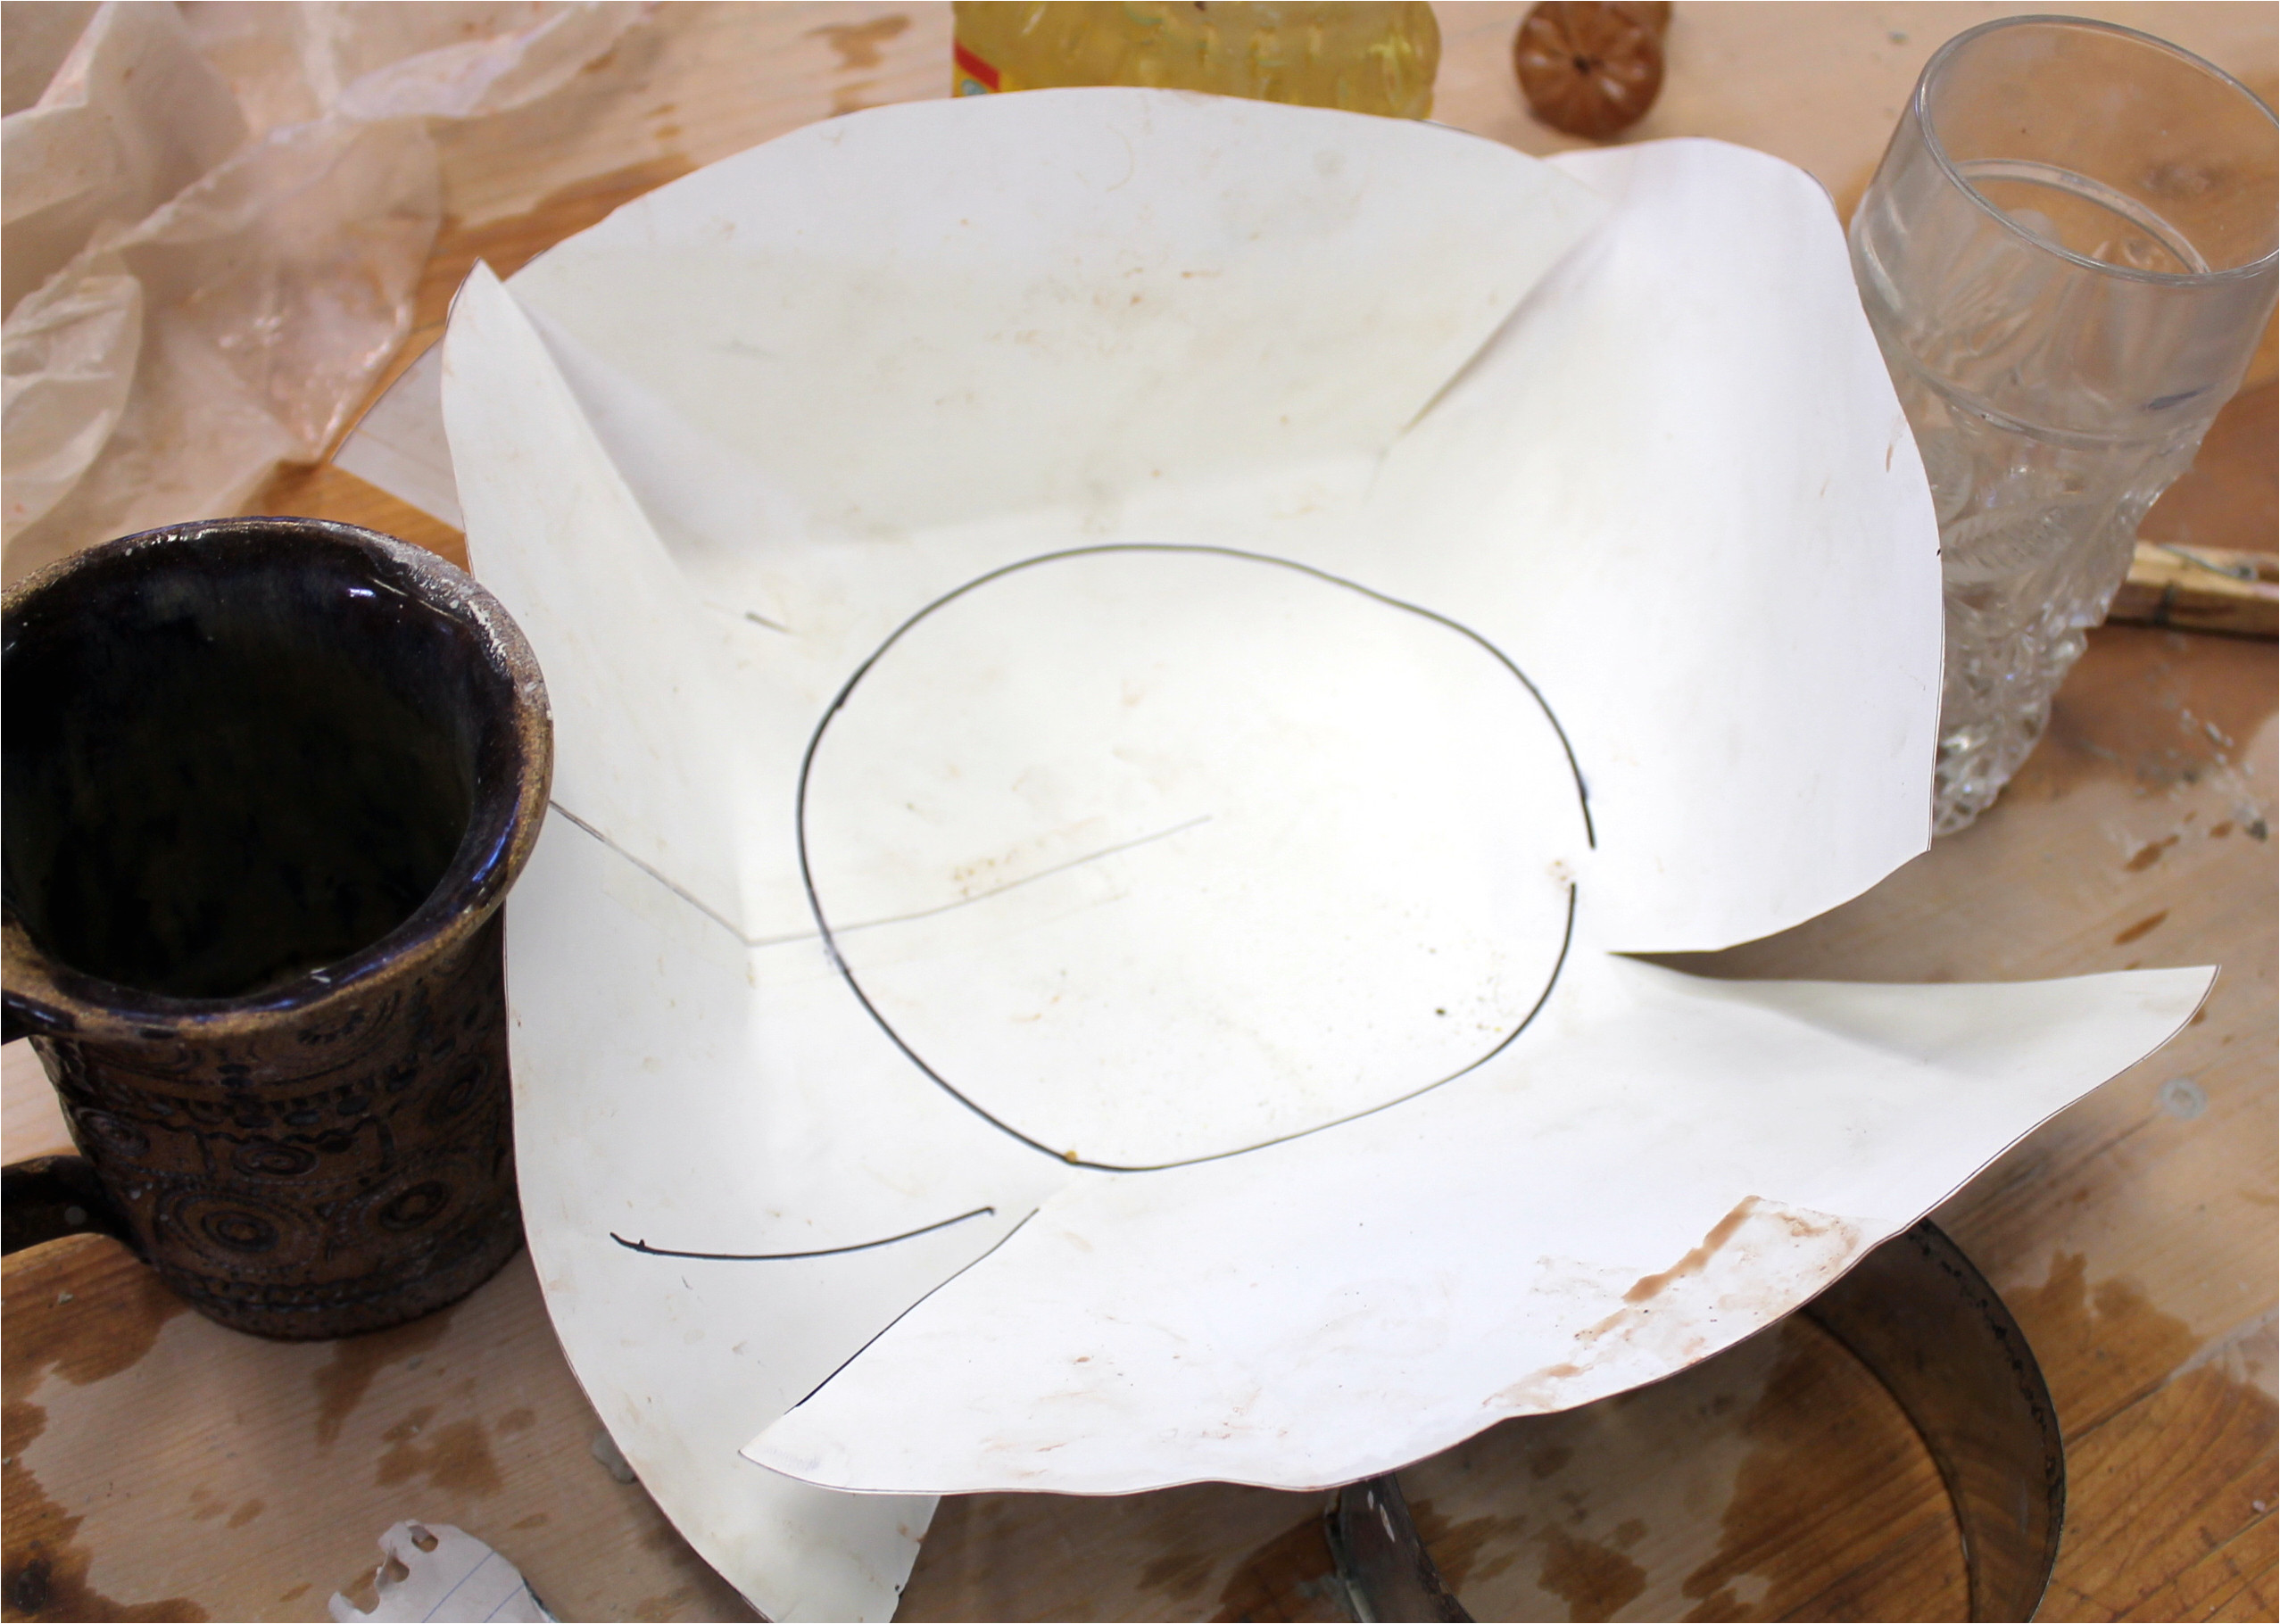 Pottery Templates Free Day 274 Slab Pottery Notch Cut Bowls Be Creative Mary